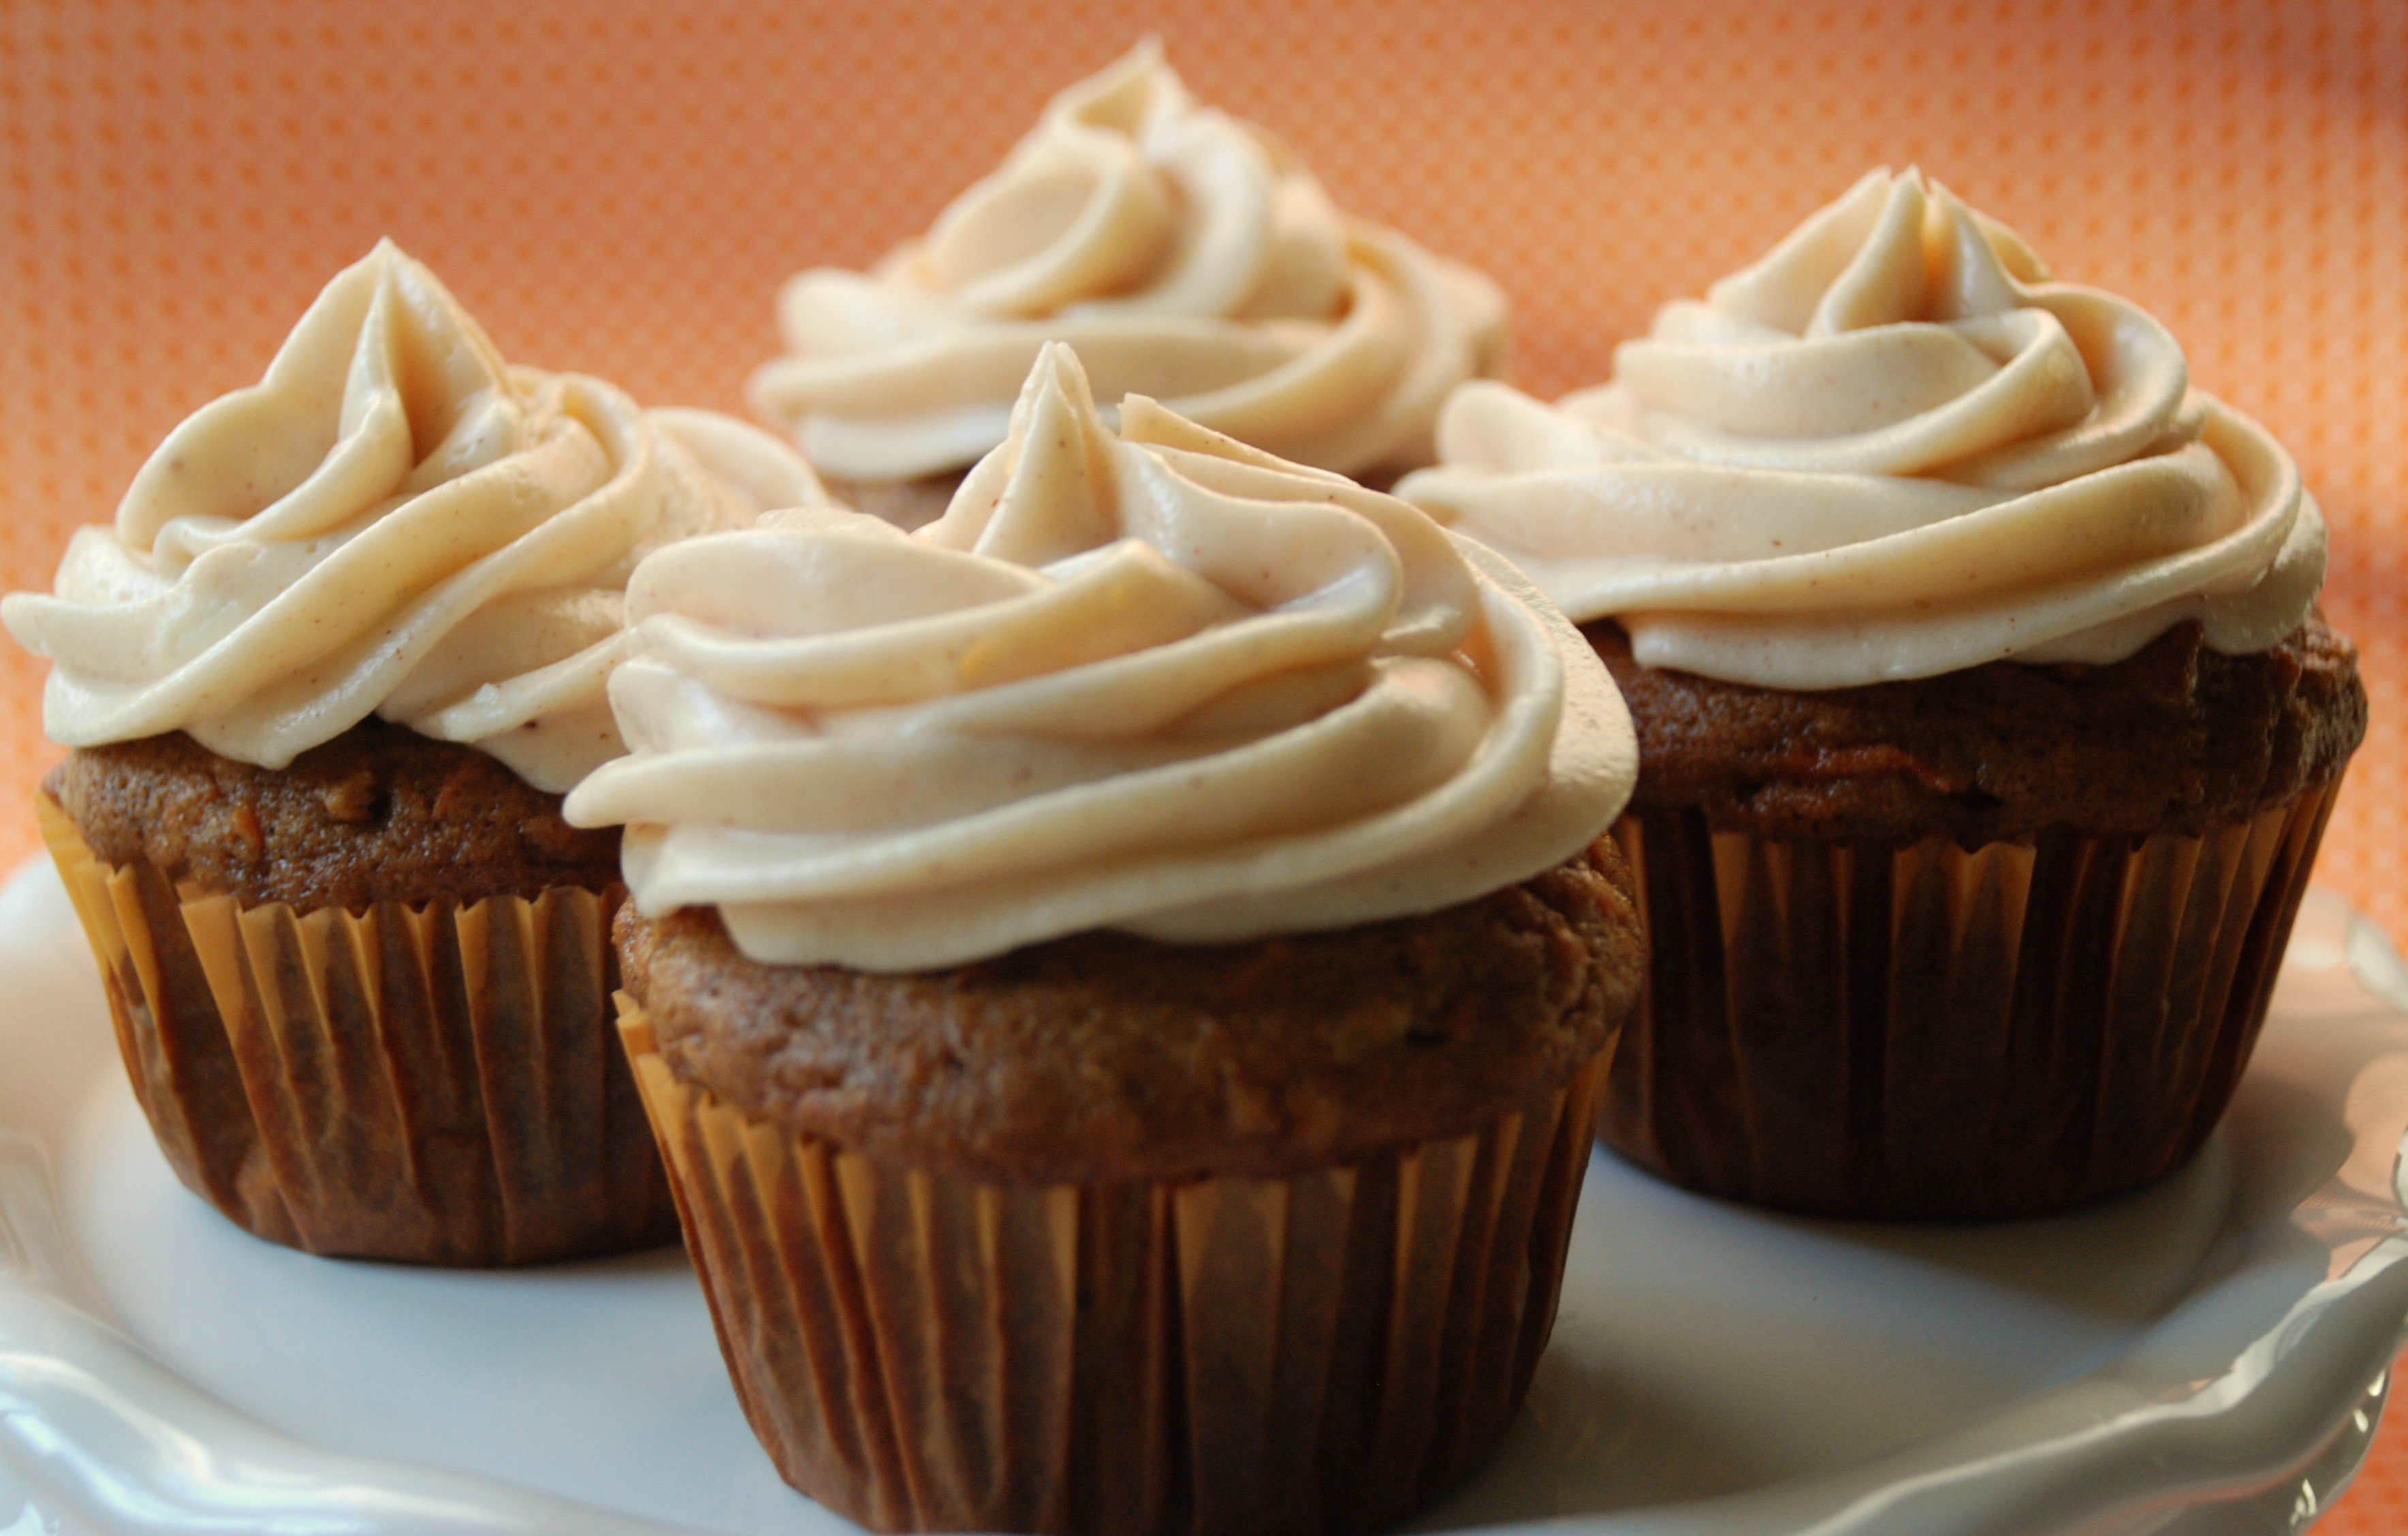 ... carrot cake carrot cupcakes cinnamon cream cheese frosting cupcakes on